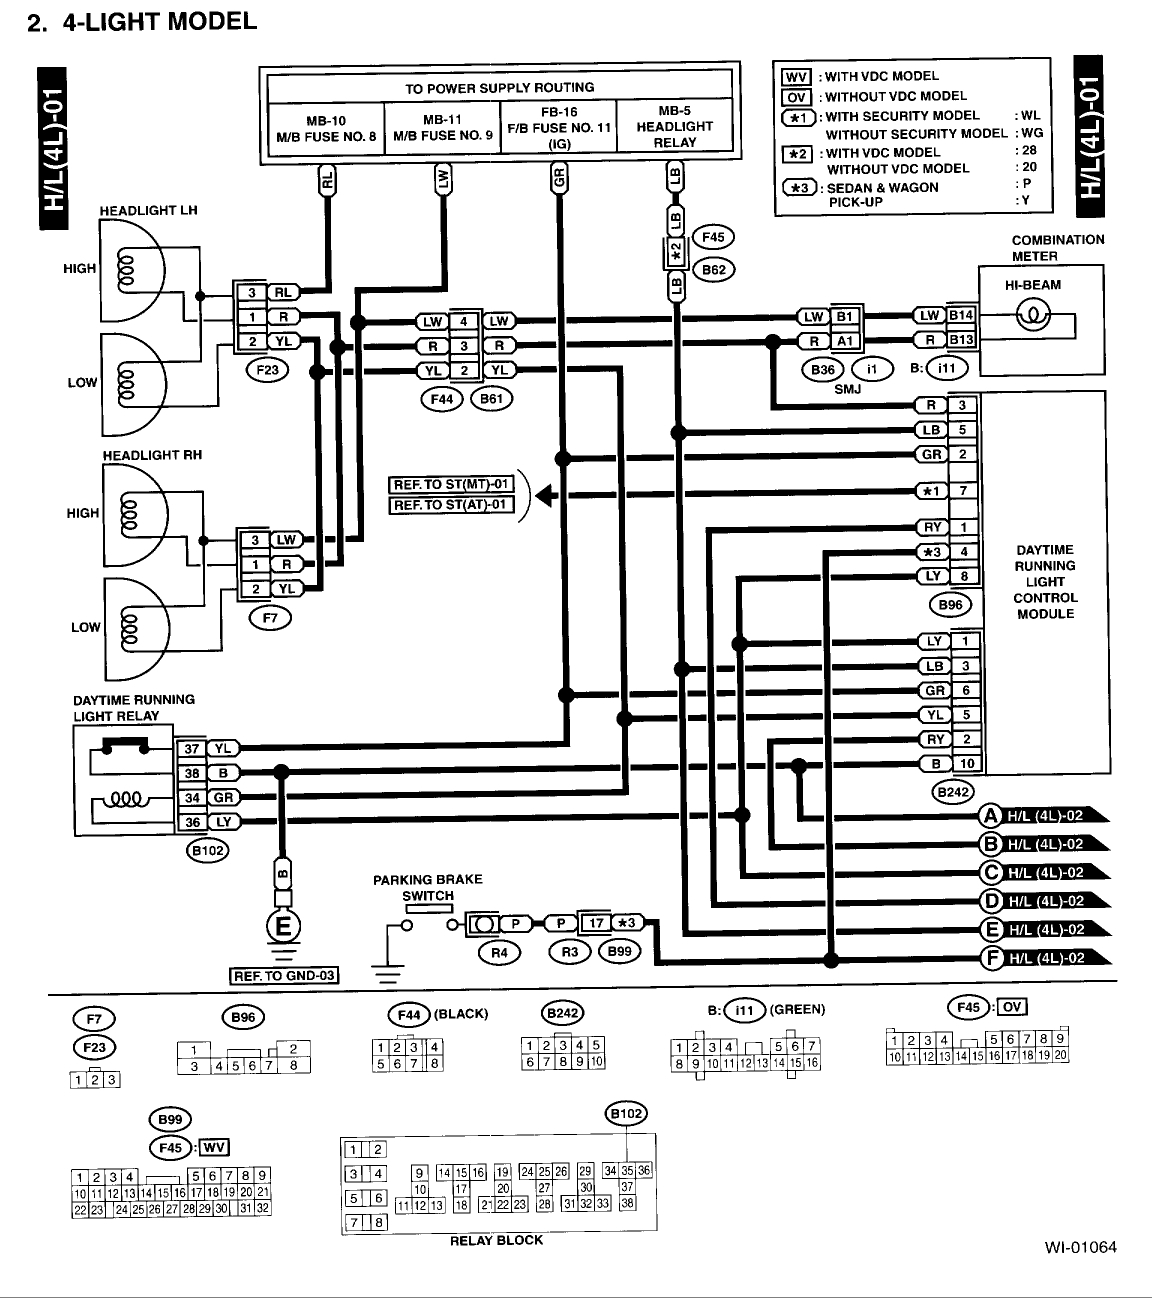 hight resolution of subaru seat wiring harness diagram wiring diagram data site harness for subaru retention also subaru engine wiring harness diagram